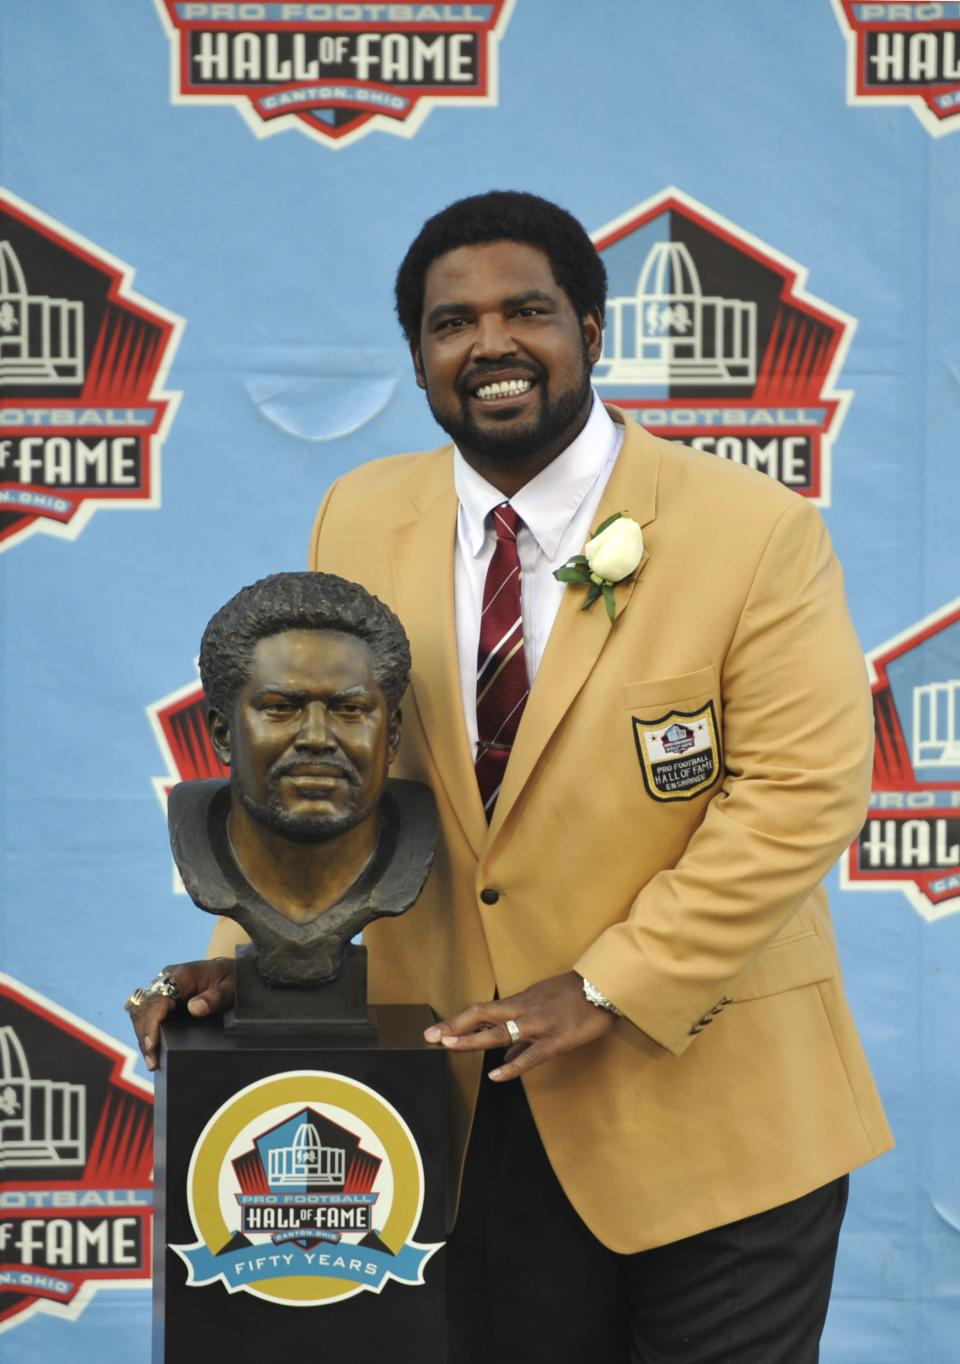 Hall of Fame inductee Jonathon Ogden poses with his bust during the 2013 Pro Football Hall of Fame Induction Ceremony Saturday, Aug. 3, 2013, in Canton, Ohio. (AP Photo/David Richard)